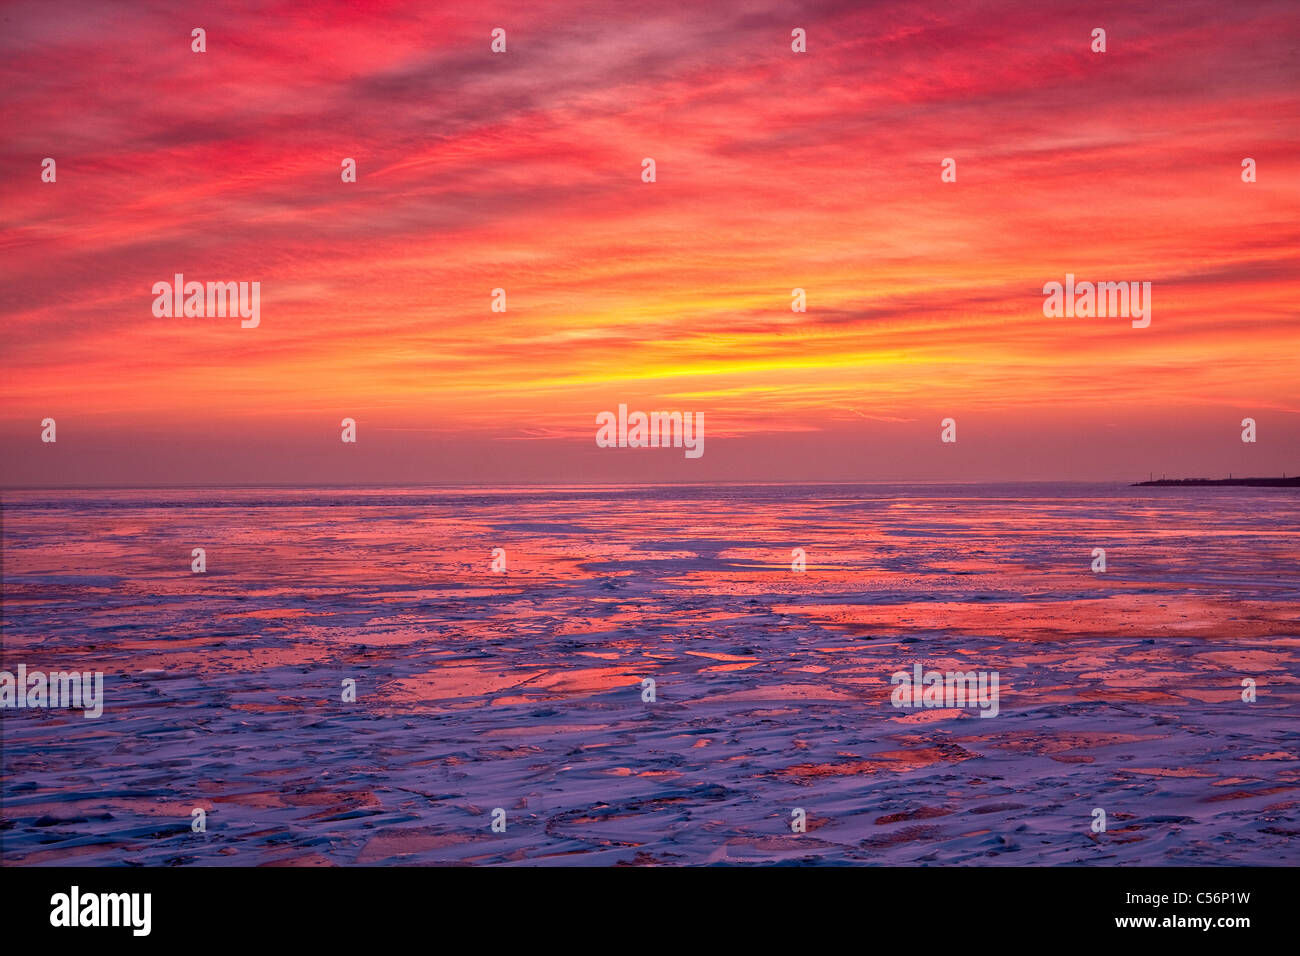 The Netherlands, Oosterdijk, Winter, snow, view on frozen lake called IJsselmeer. Sunrise. - Stock Image